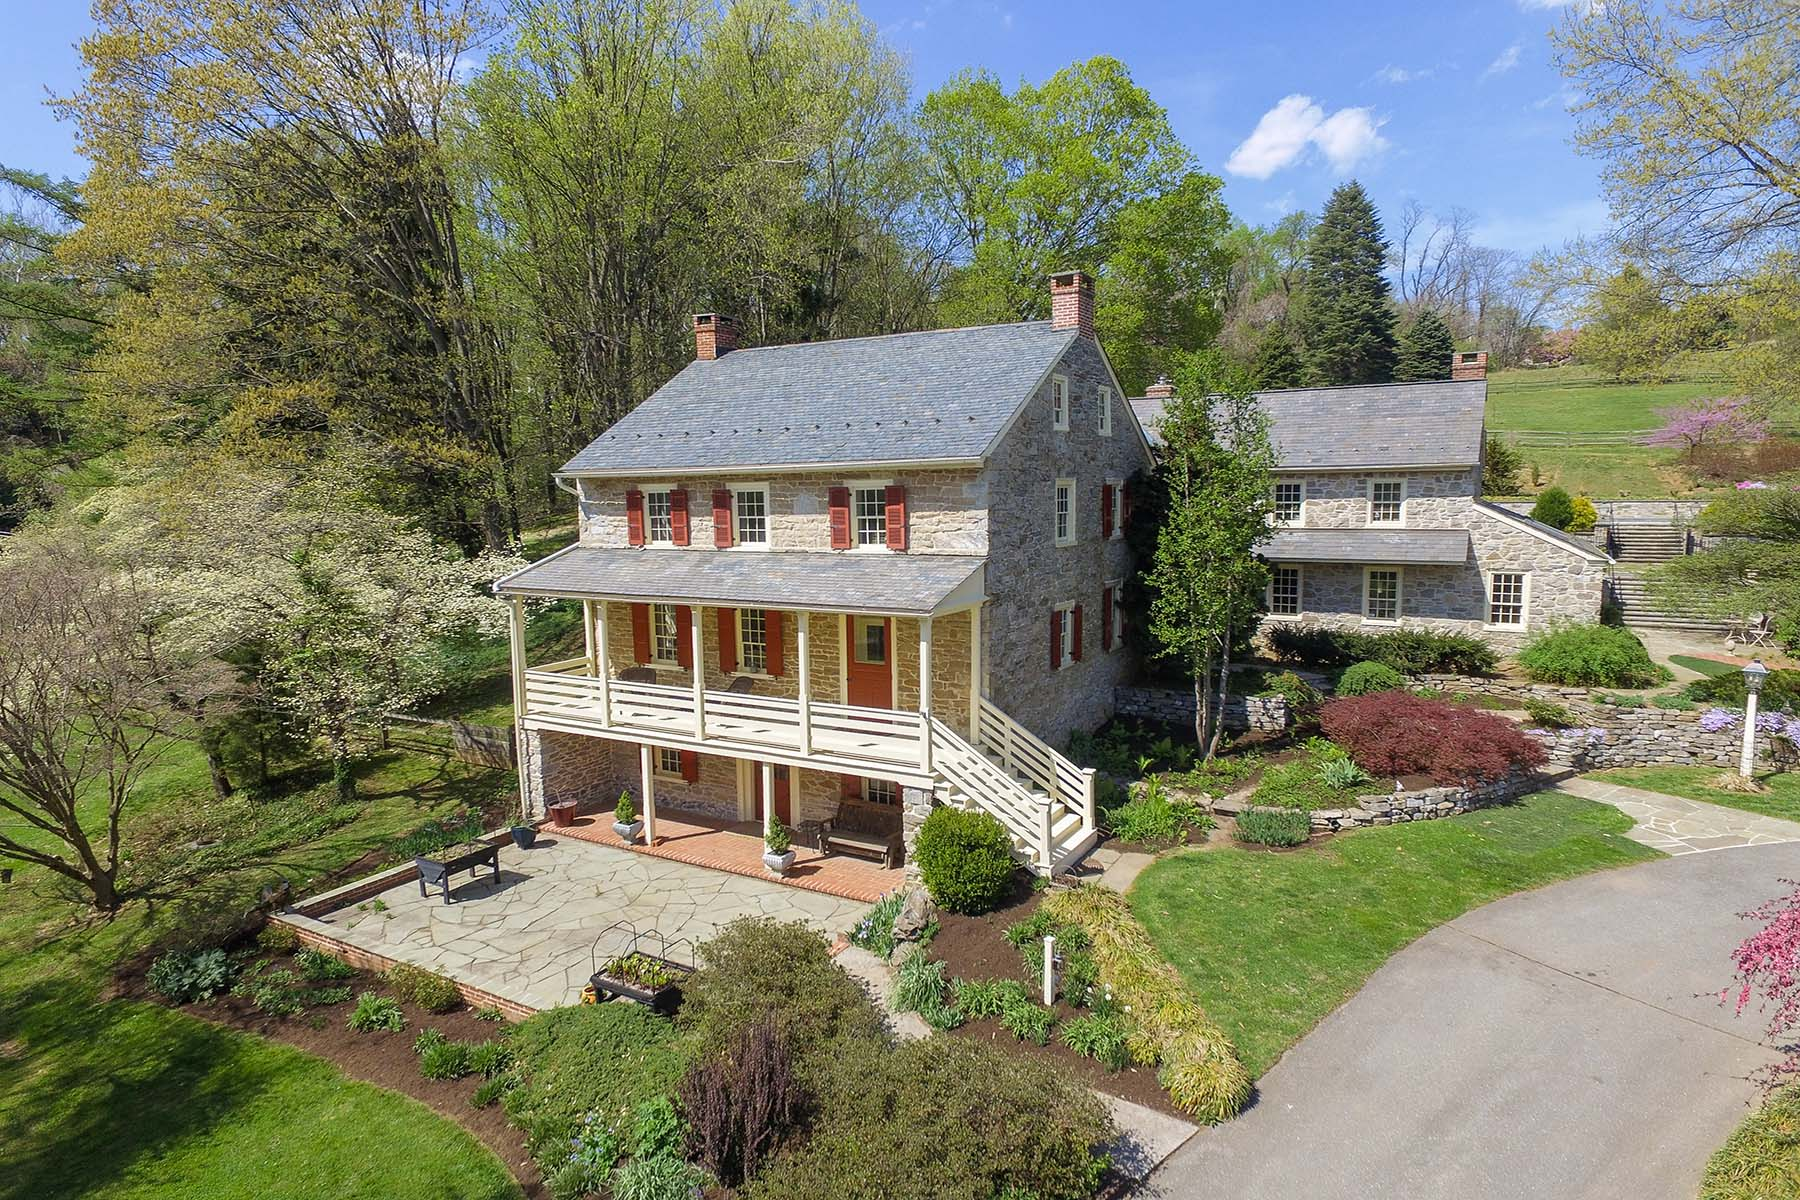 Single Family Home for Sale at 85 Spring Run Road Conestoga, Pennsylvania 17516 United States